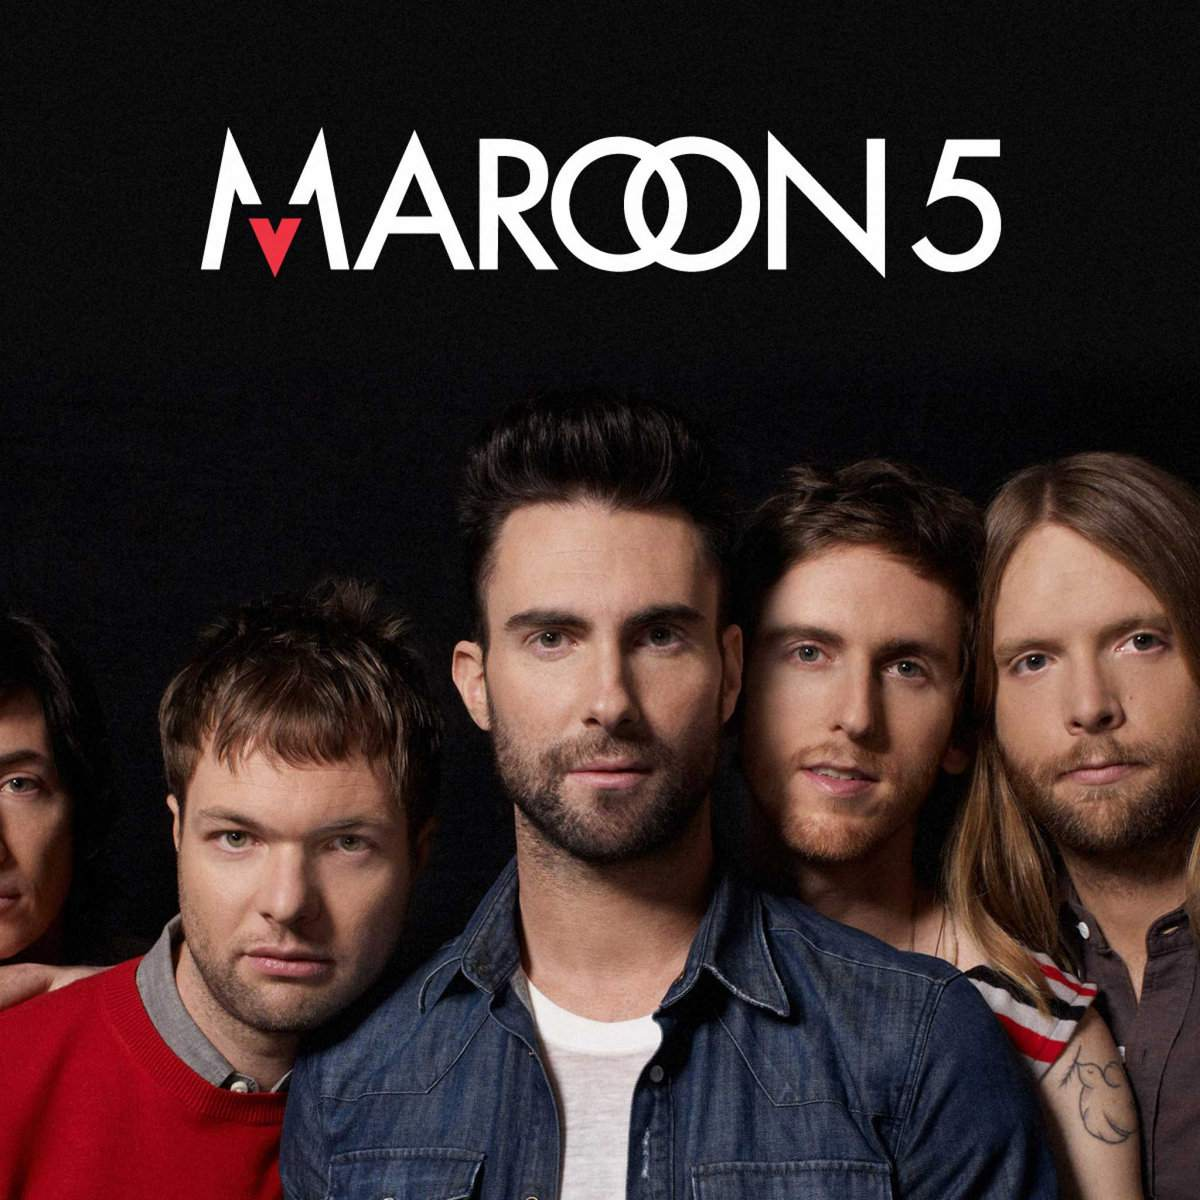 Top 10 Maroon 5 Songs of All Time